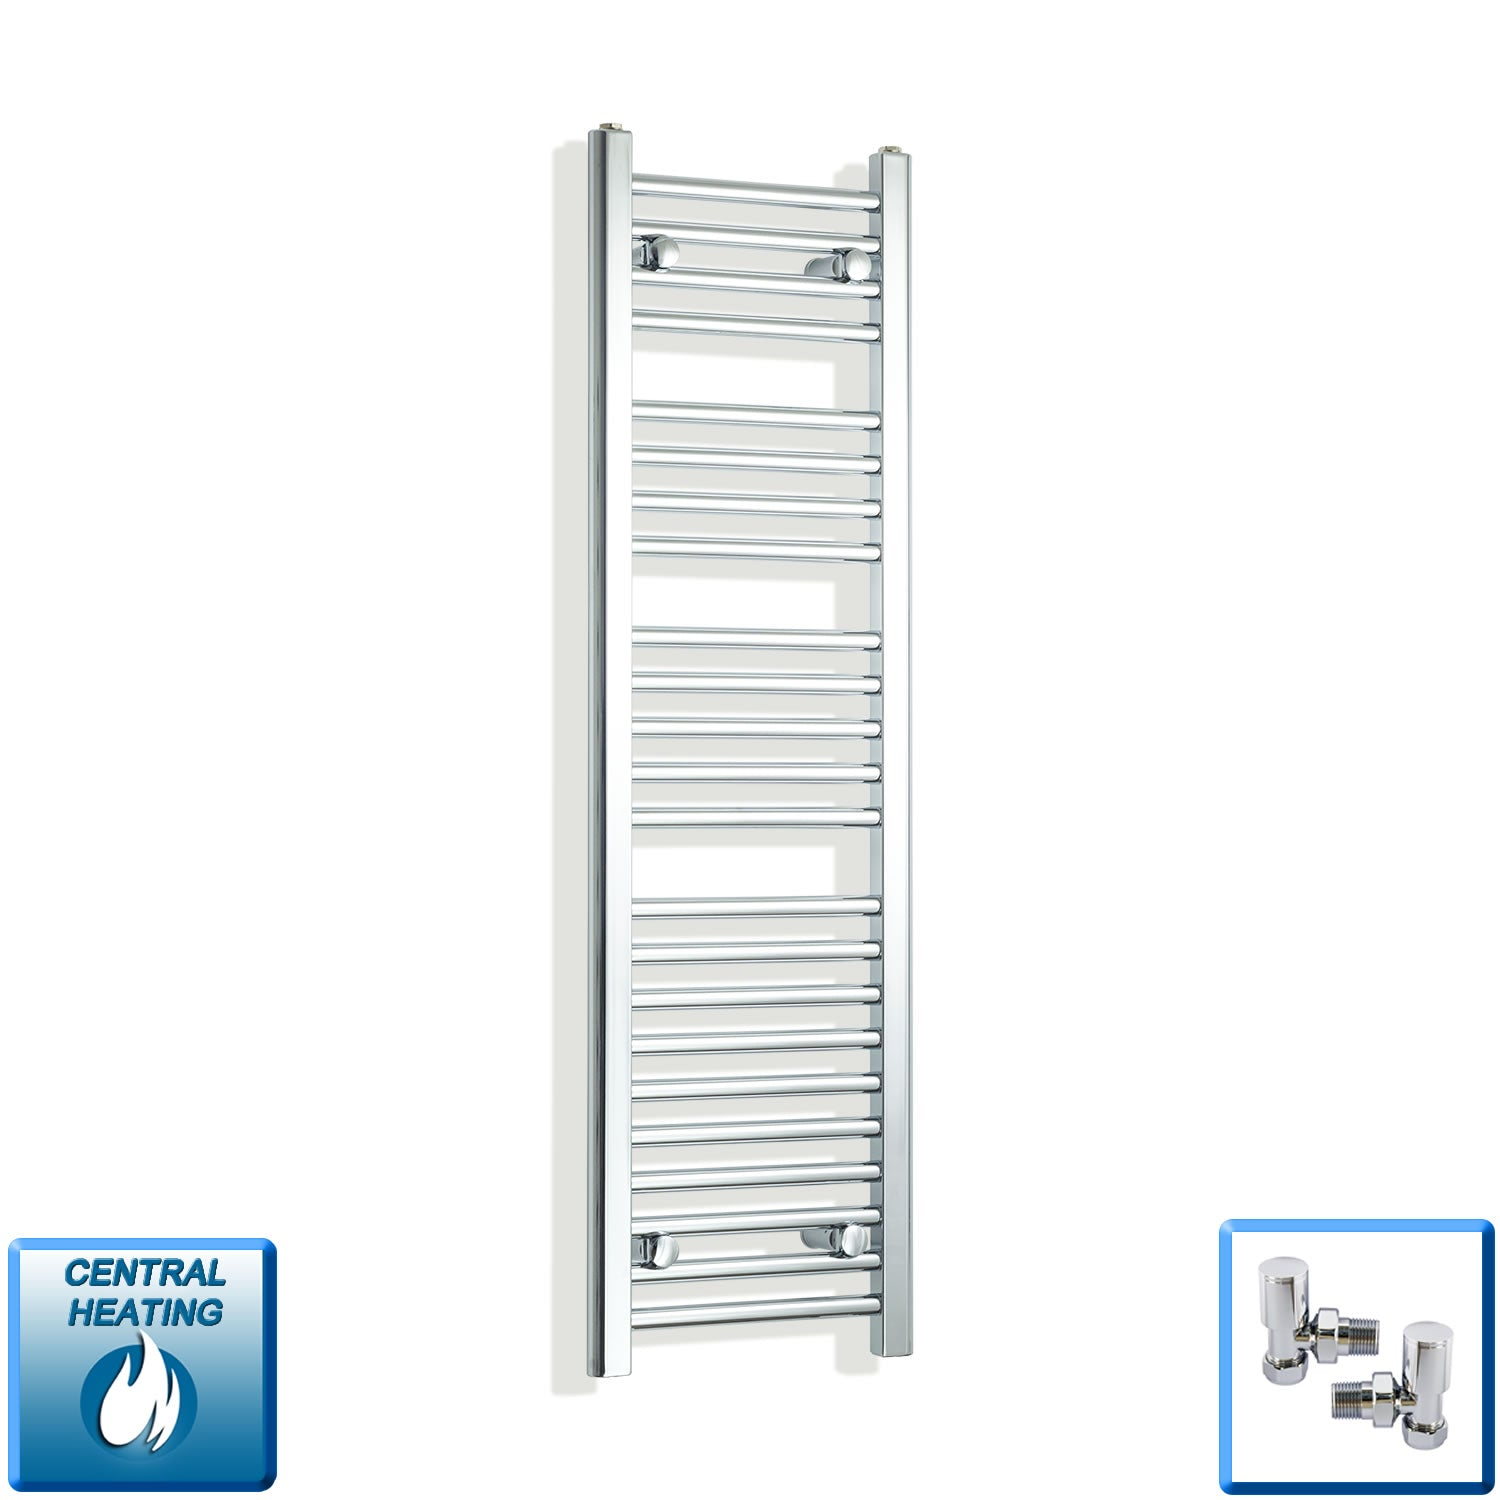 300mm Wide 1200mm High Chrome Towel Rail Radiator With Angled Valve